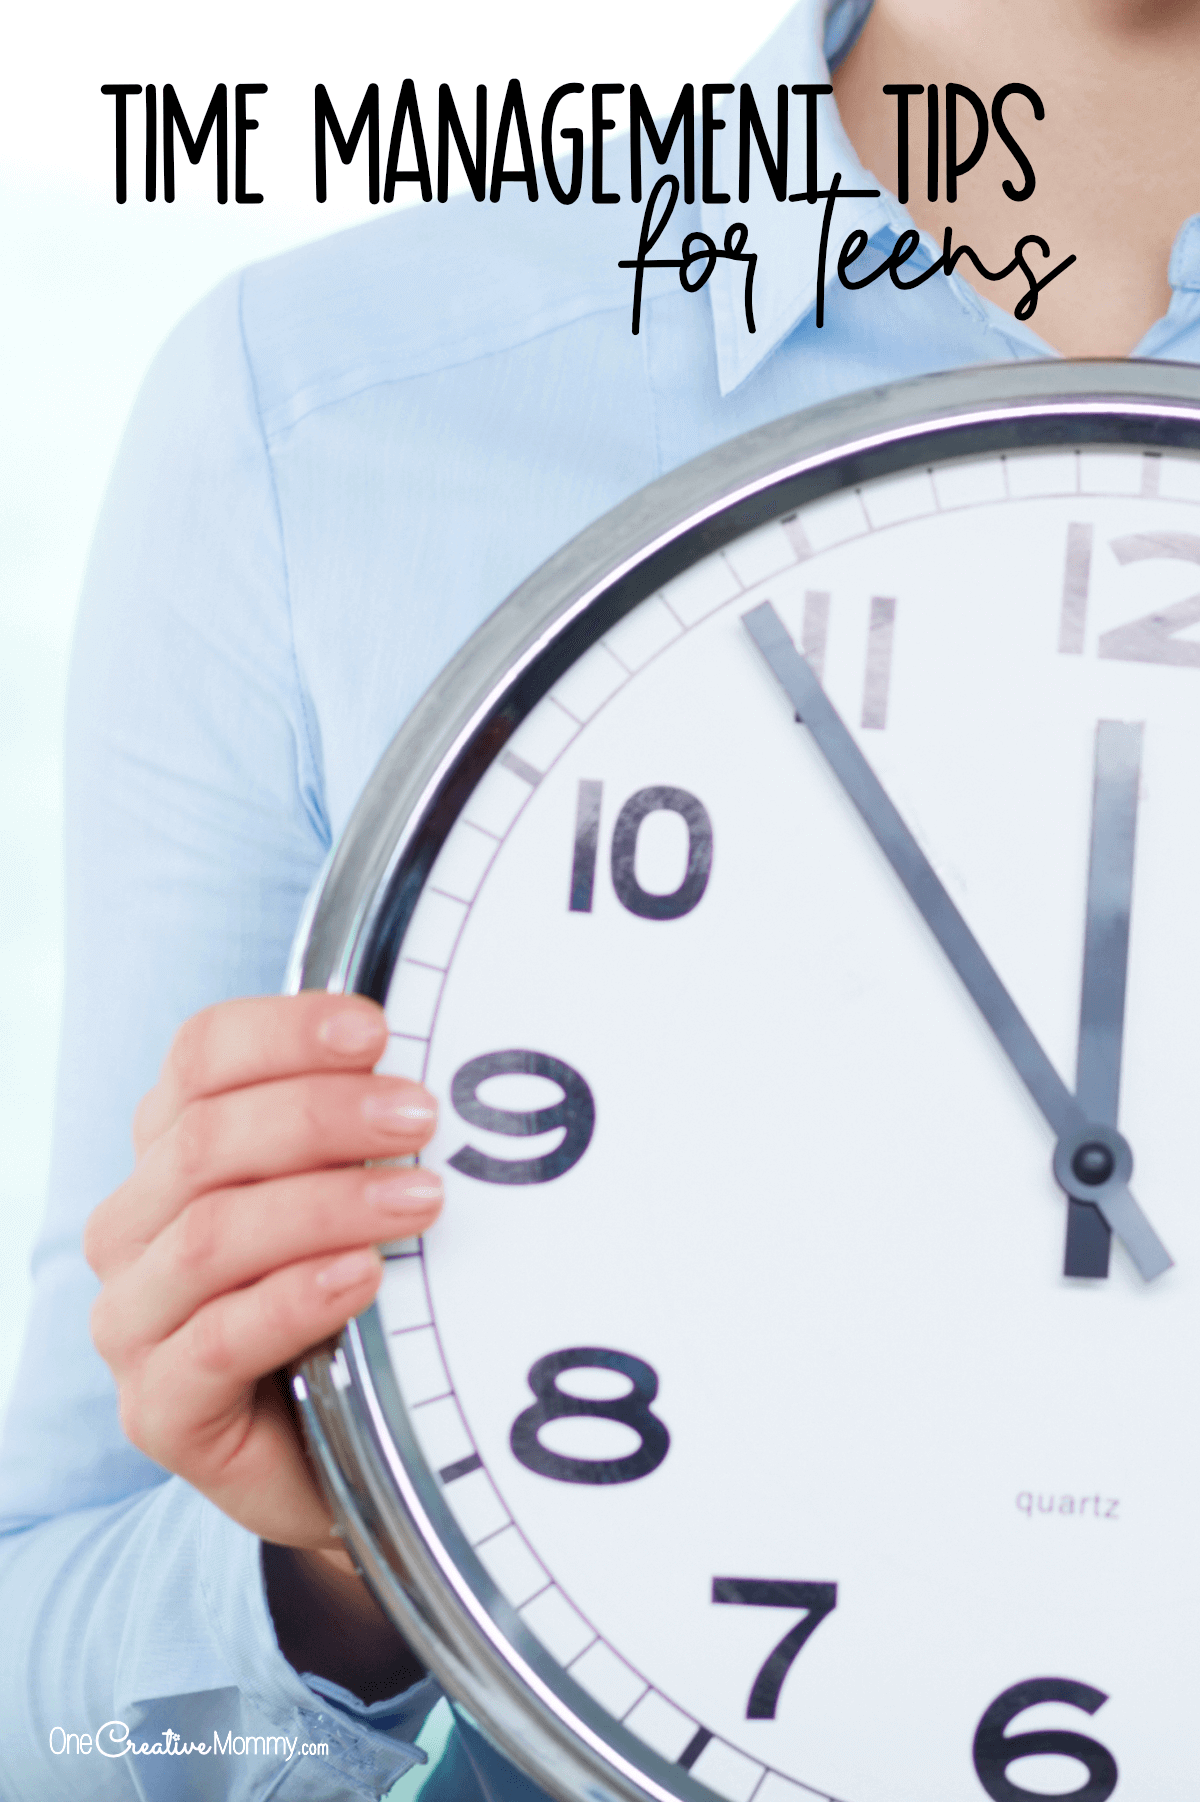 Time Management Tips for Teens and the Parents Who Love Them {OneCreativeMommy.com} #timemanagement #procrastination #tipsforteens #parentingtips